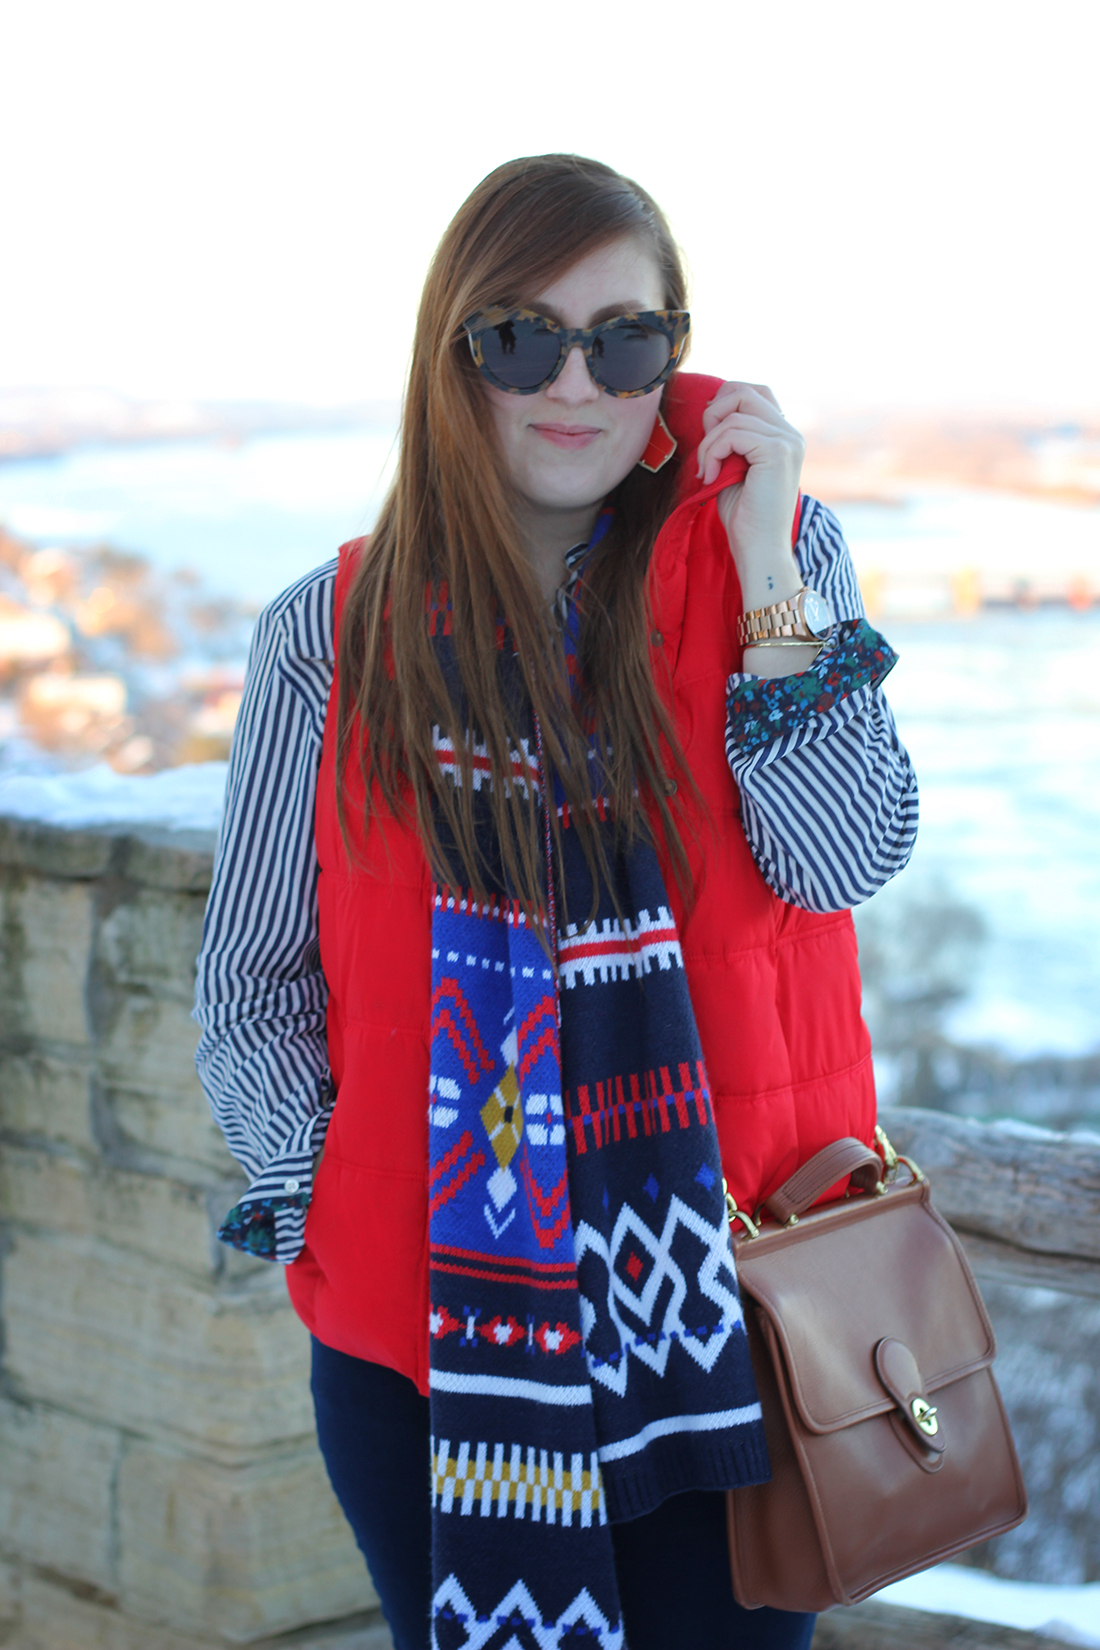 fair-isle-knit-scarf-puffy-vest-shearling-4